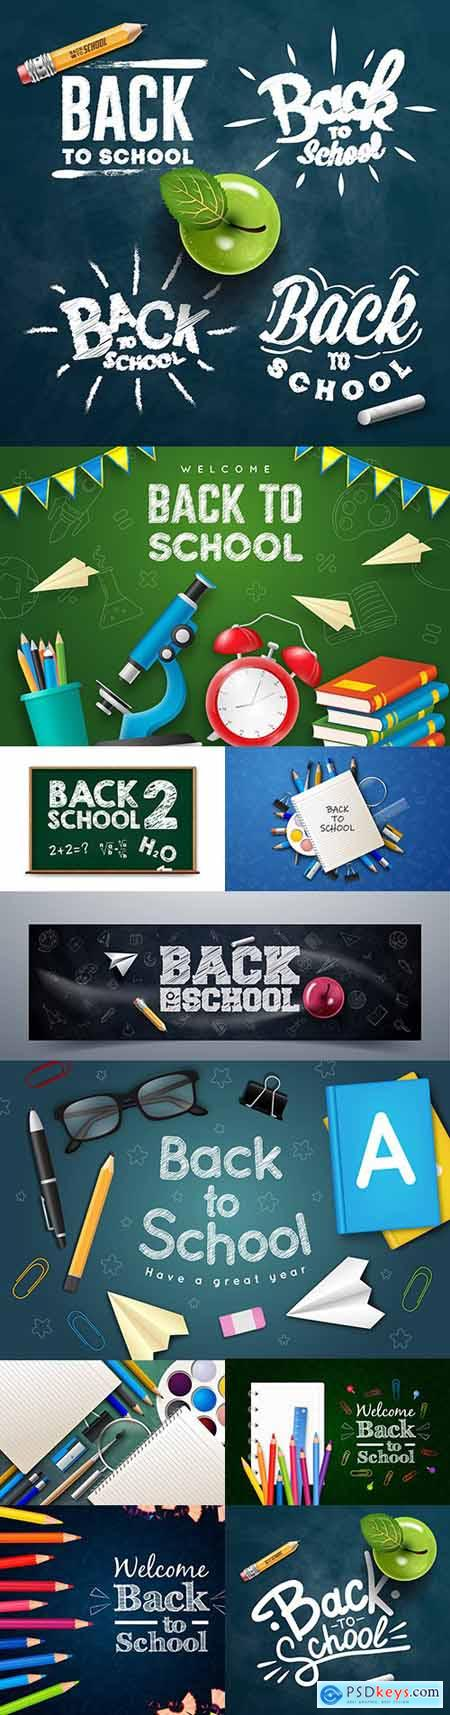 Back to school and accessories collection illustration 45